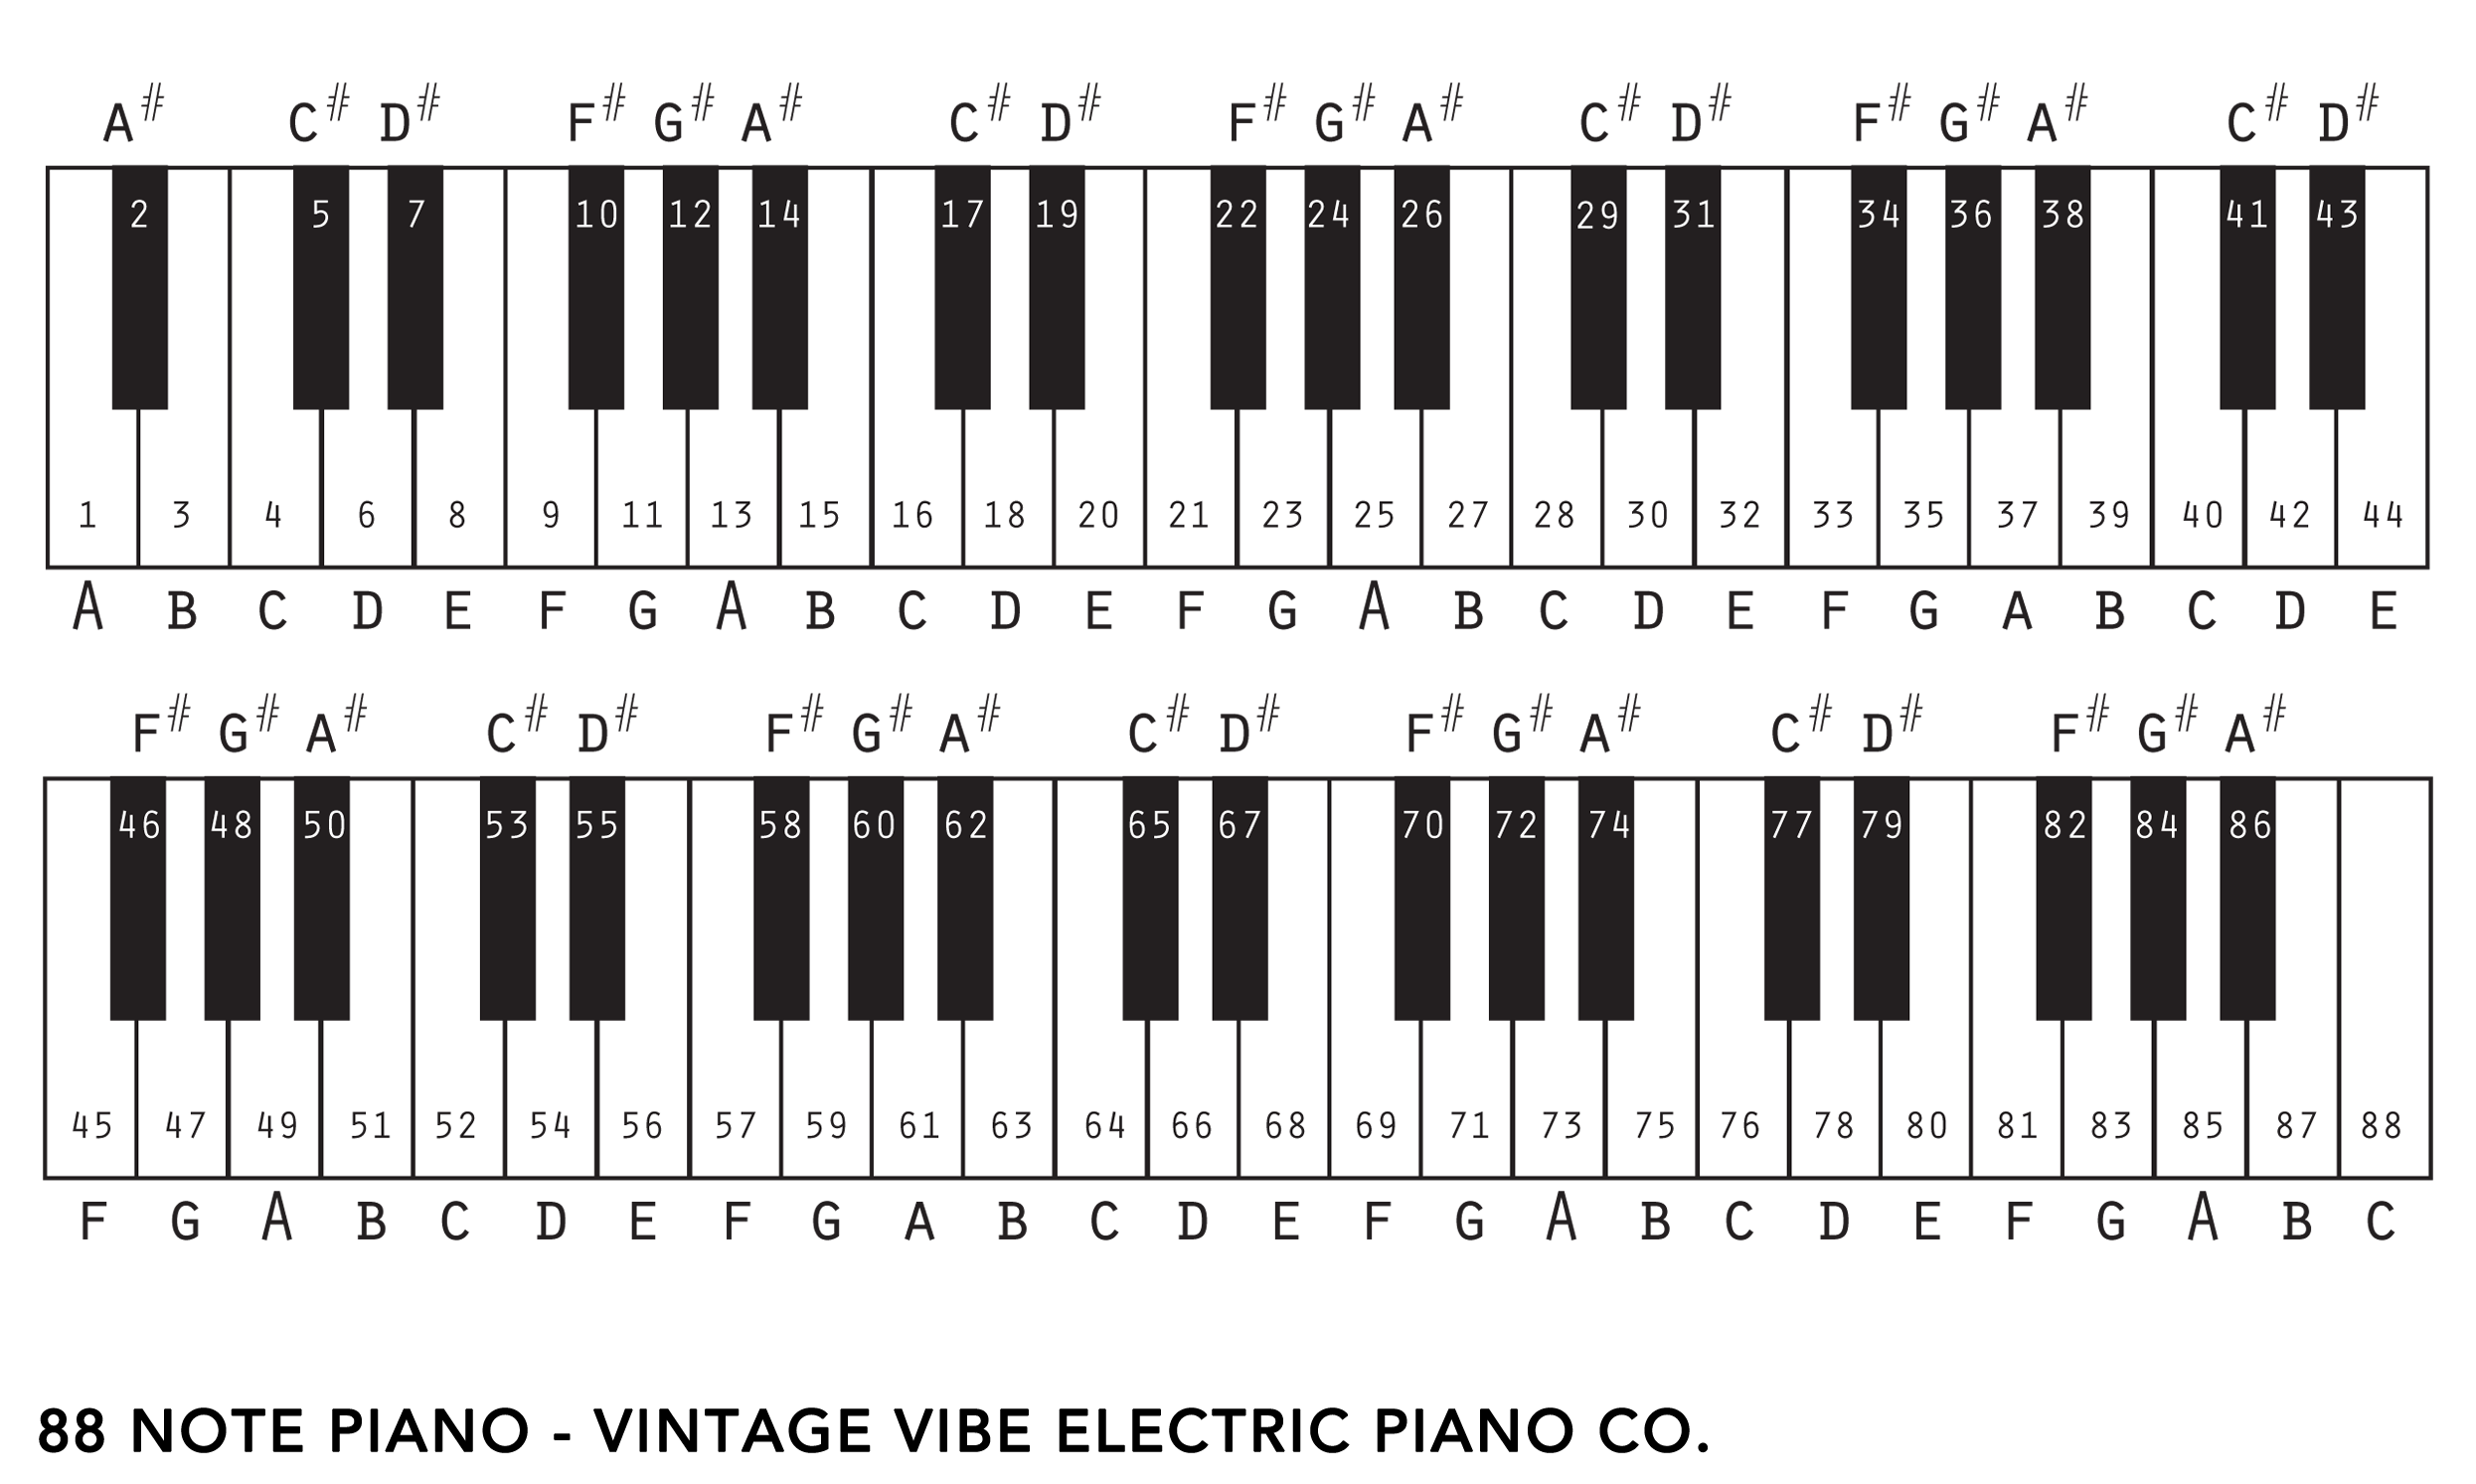 88 Key Piano Keyboard Diagram Electron Dot For Calcium And Tine Chart An Note Rhodes Vintage Vibe Tech